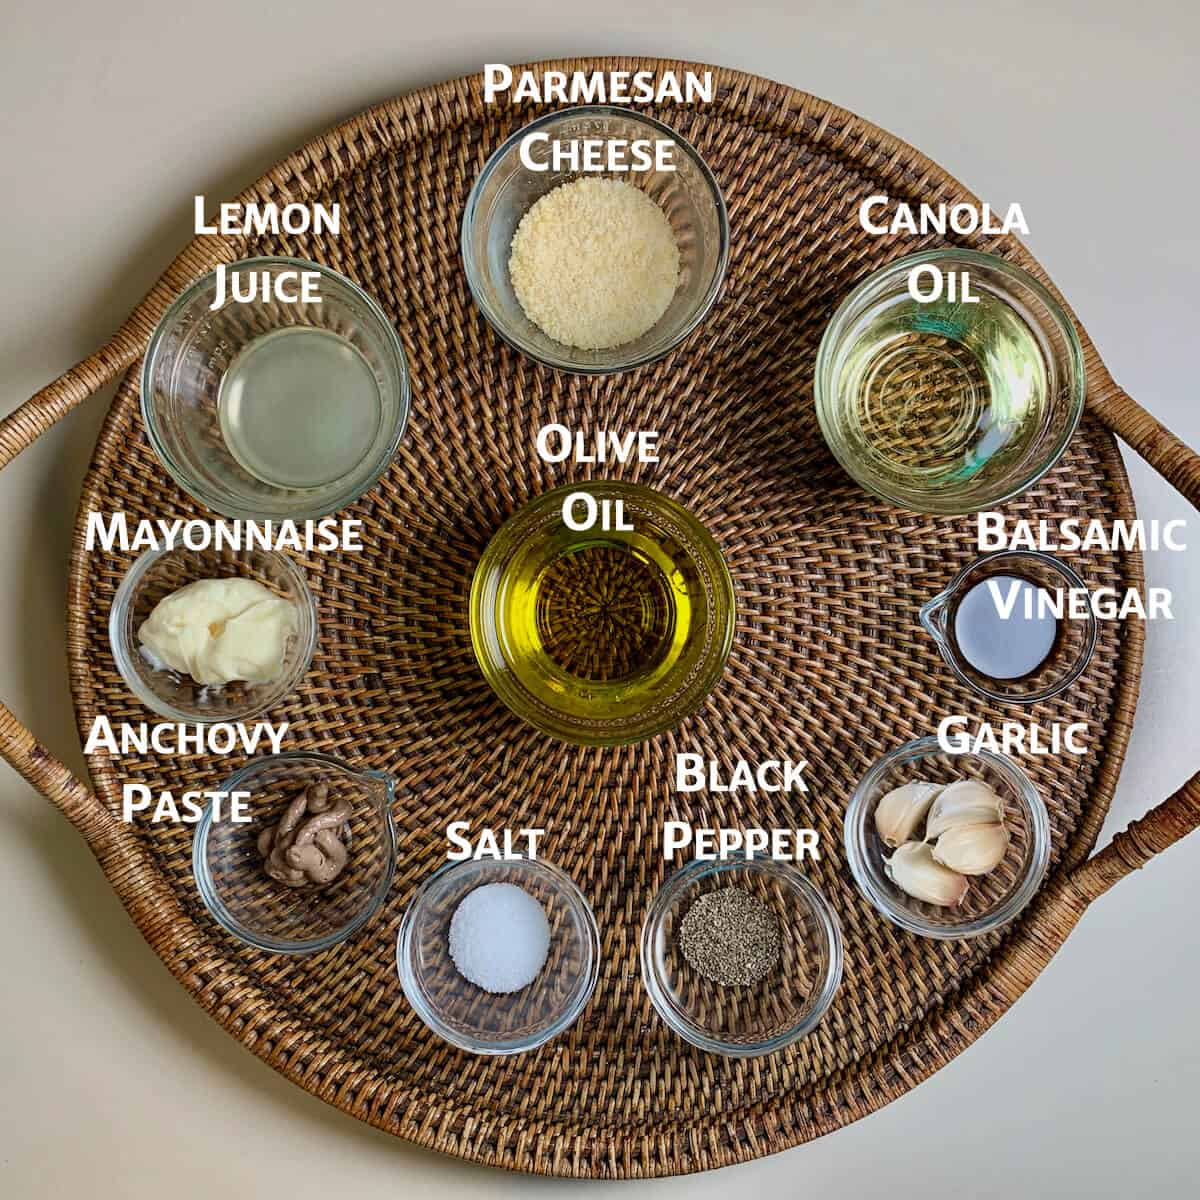 Caesar salad ingredients in glass bowls on a wooden tray.